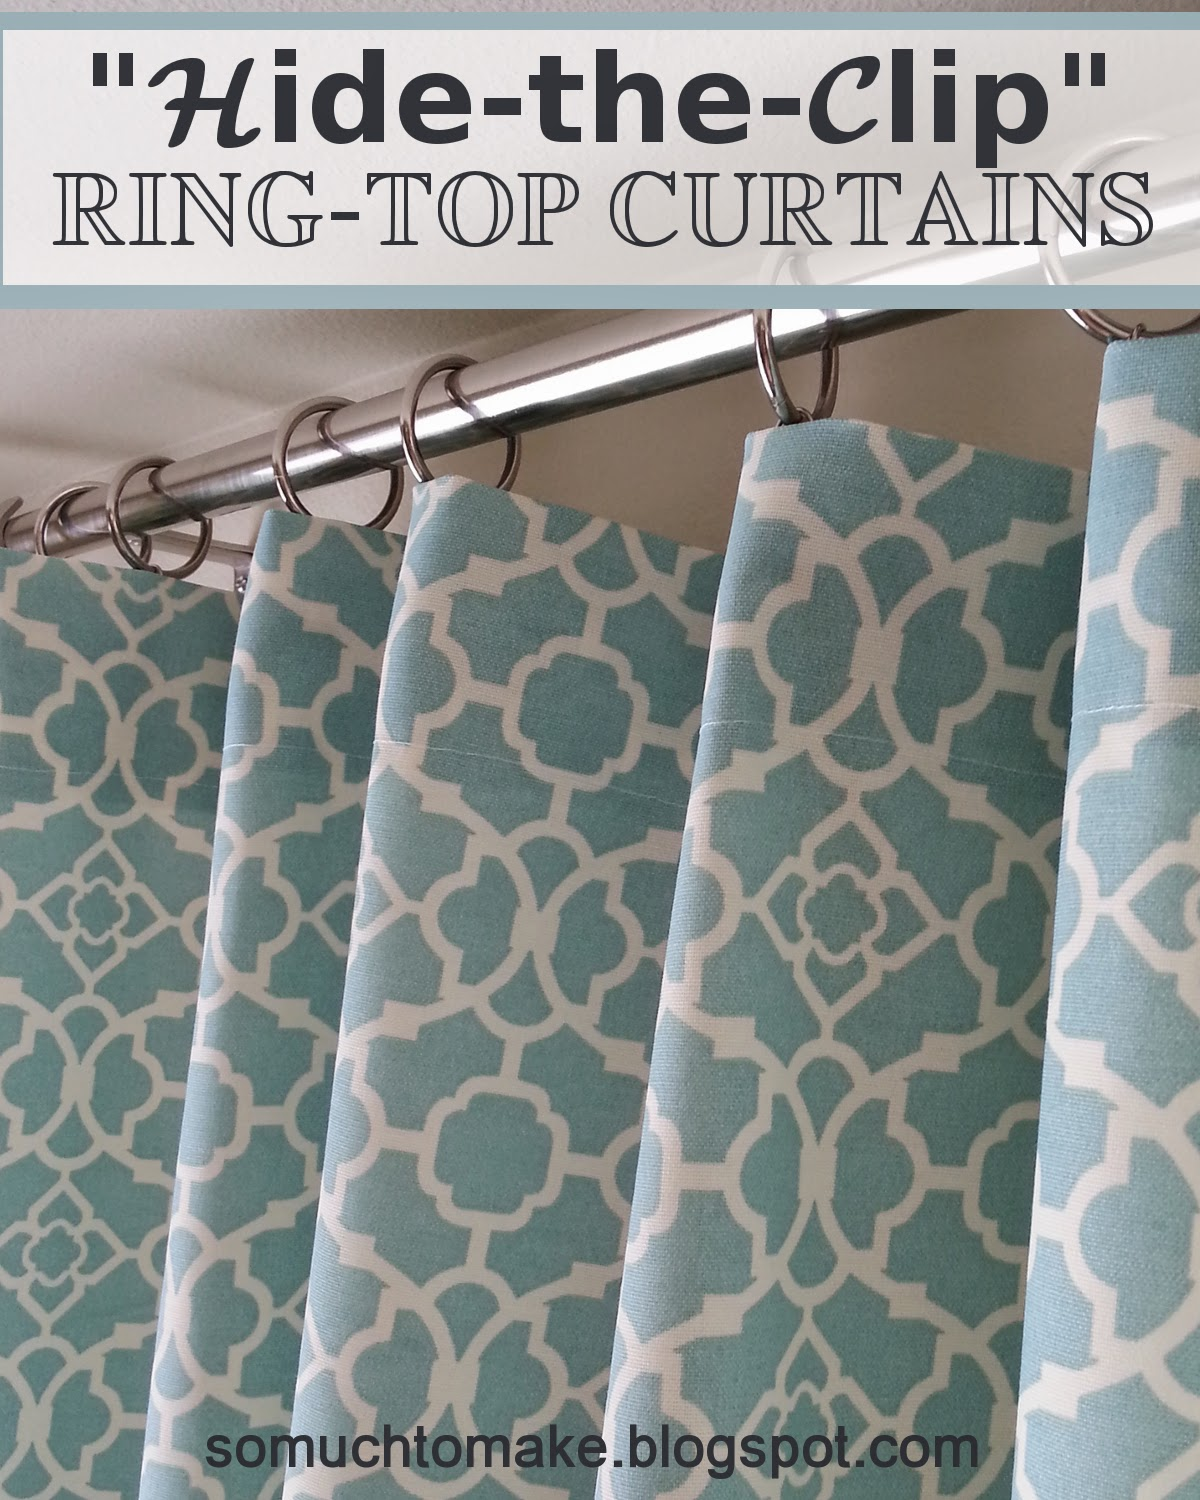 I FINALLY Made Curtains For Our Family Room Ordered Swatches Over A Year Ago And Just Couldnt Decide So Waited